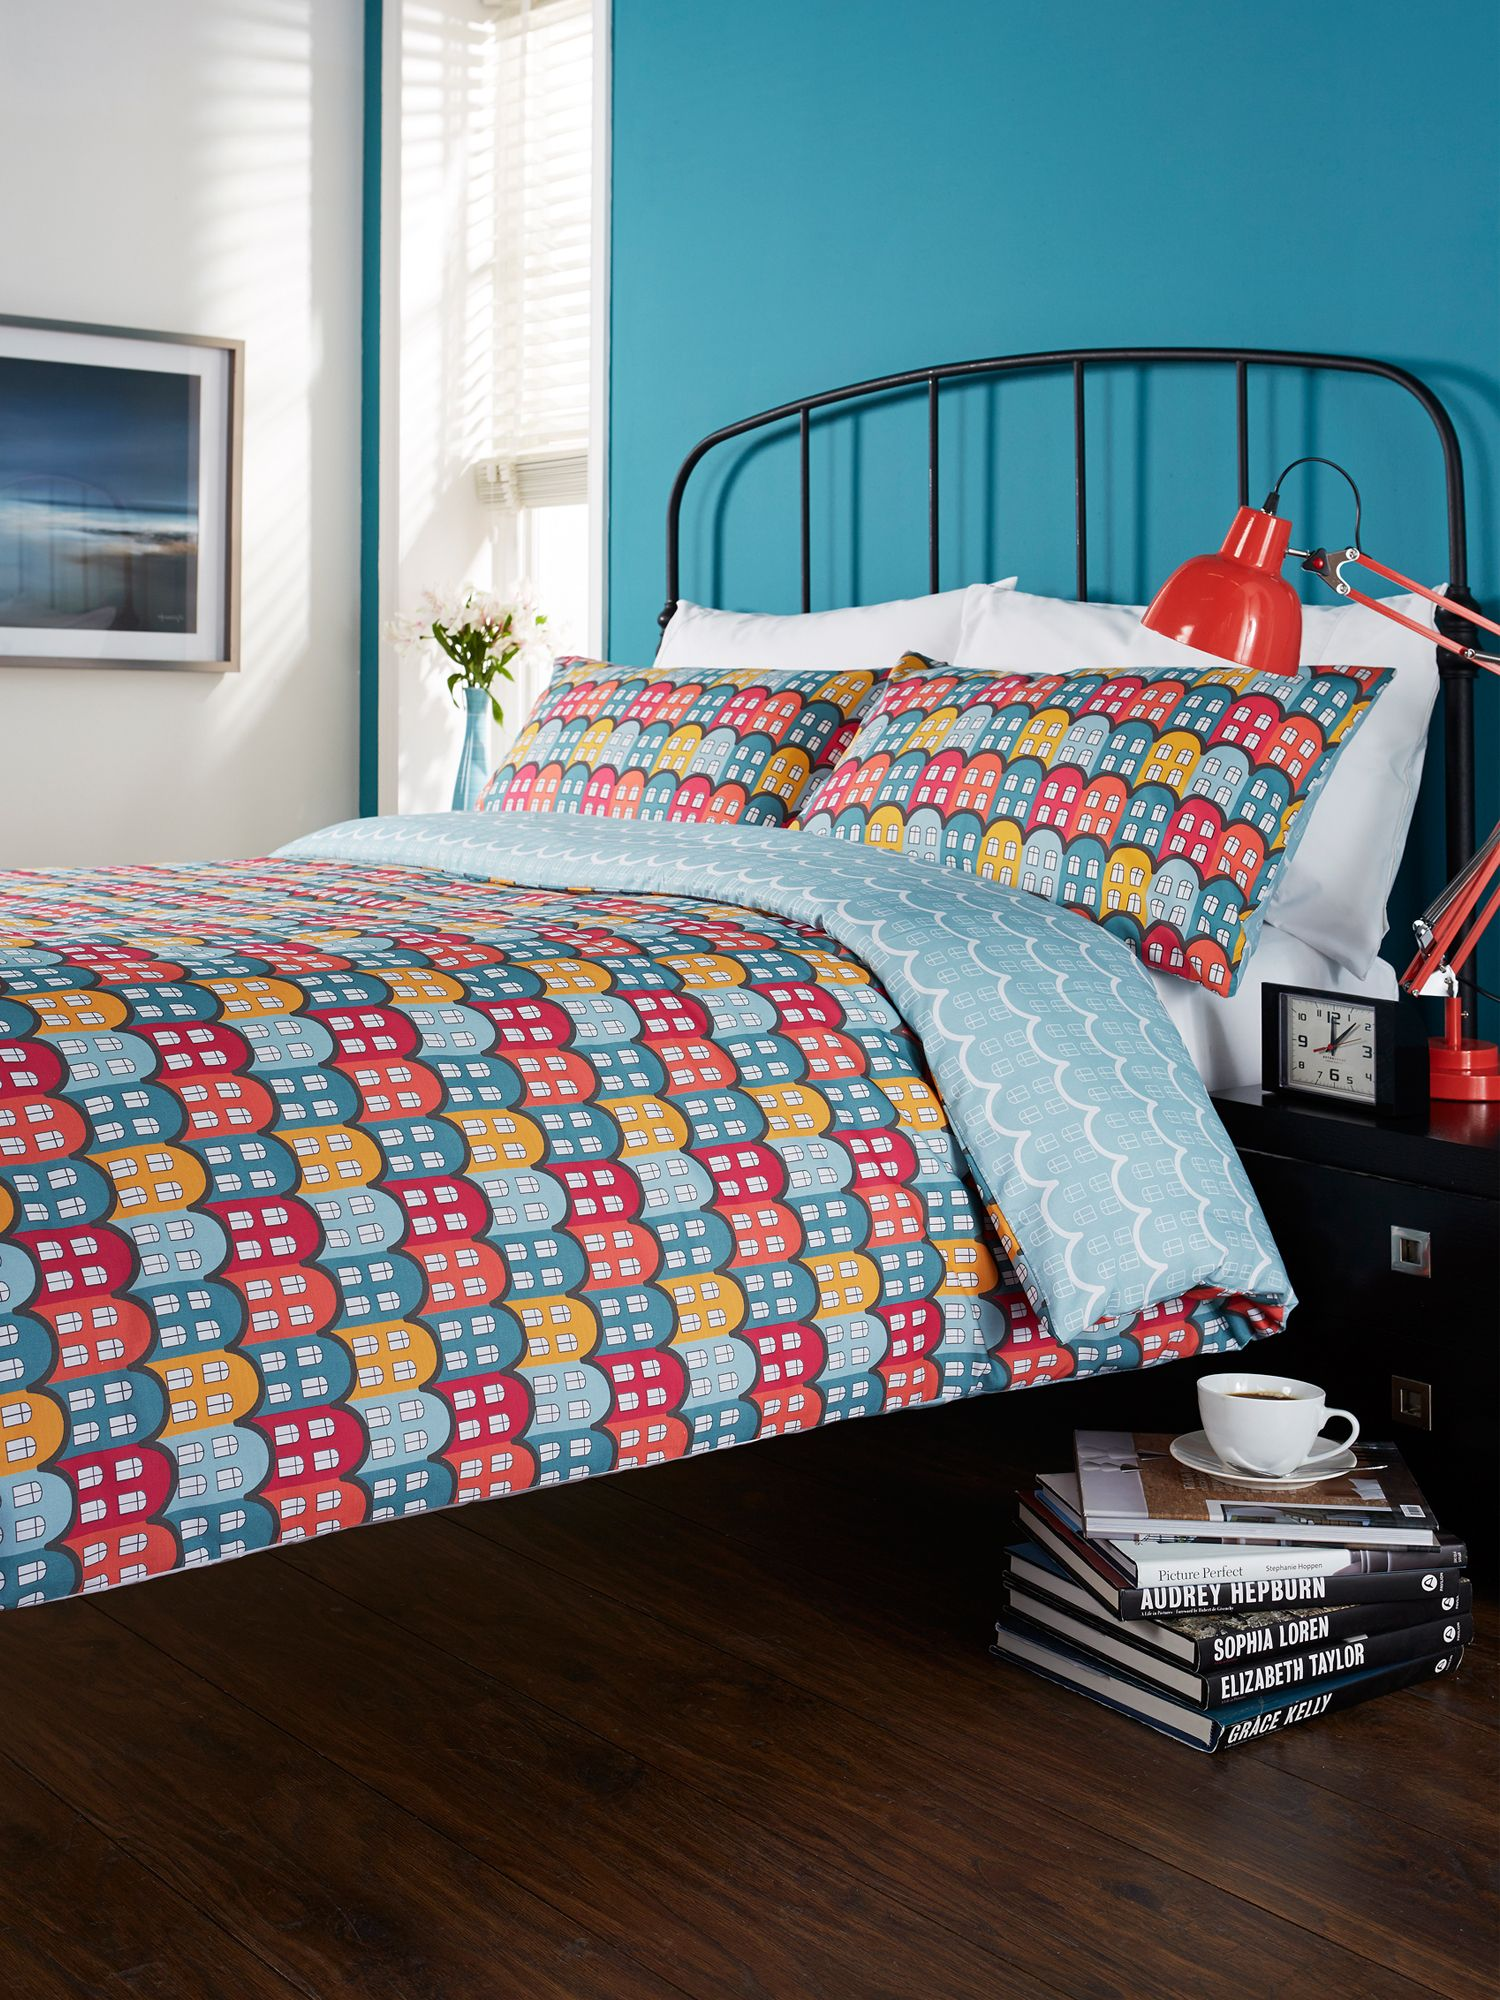 Image of Humming Bird by Christy Retro Houses duvet cover set